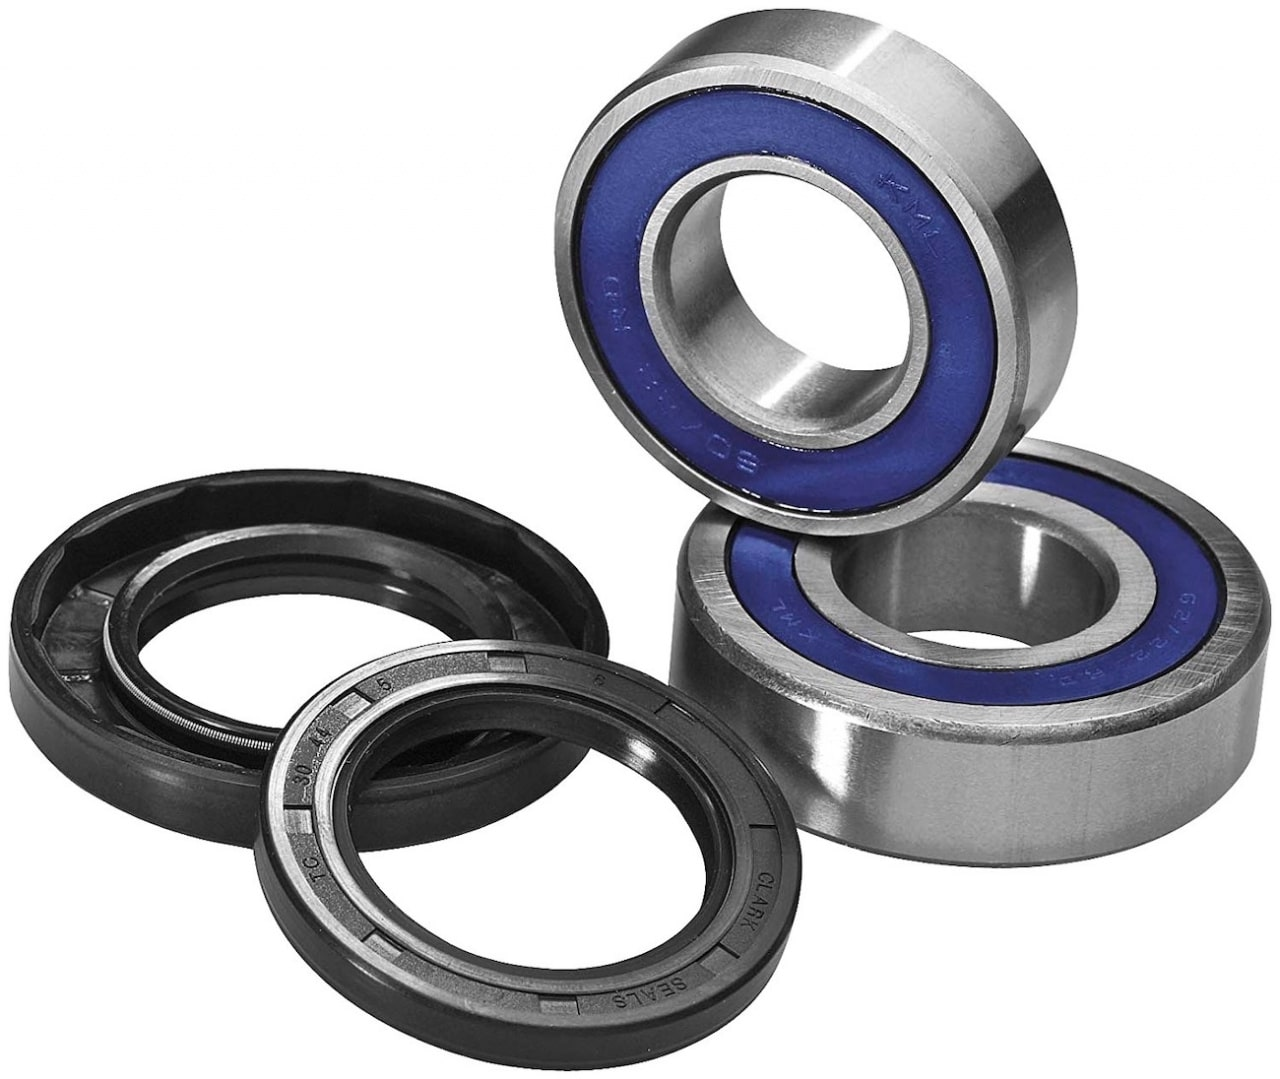 Rear Wheel Bearings /& Seals for Talon Hubs Suzuki RMZ250 04-10